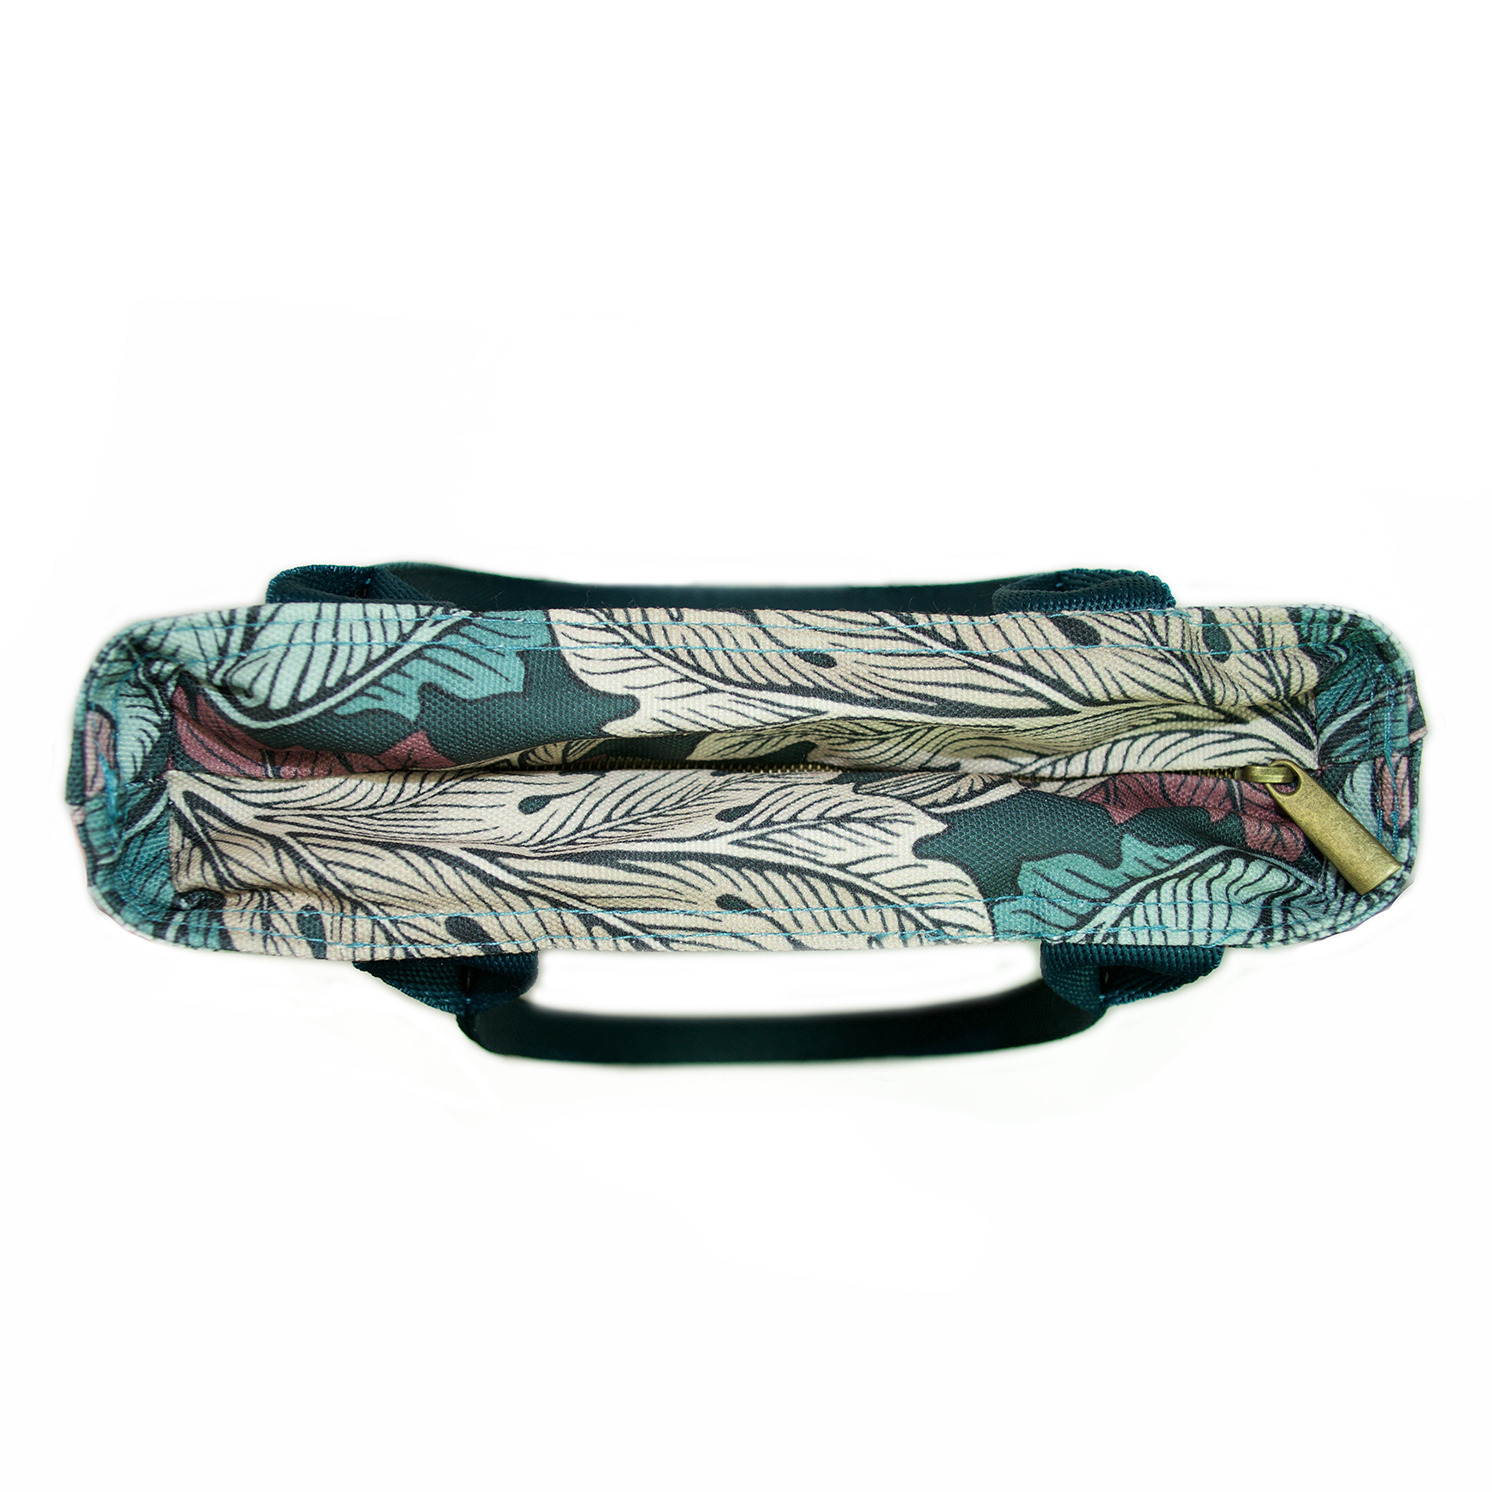 Morris & Co – Acanthus Print Insulated Cool Lunch Tote Bag